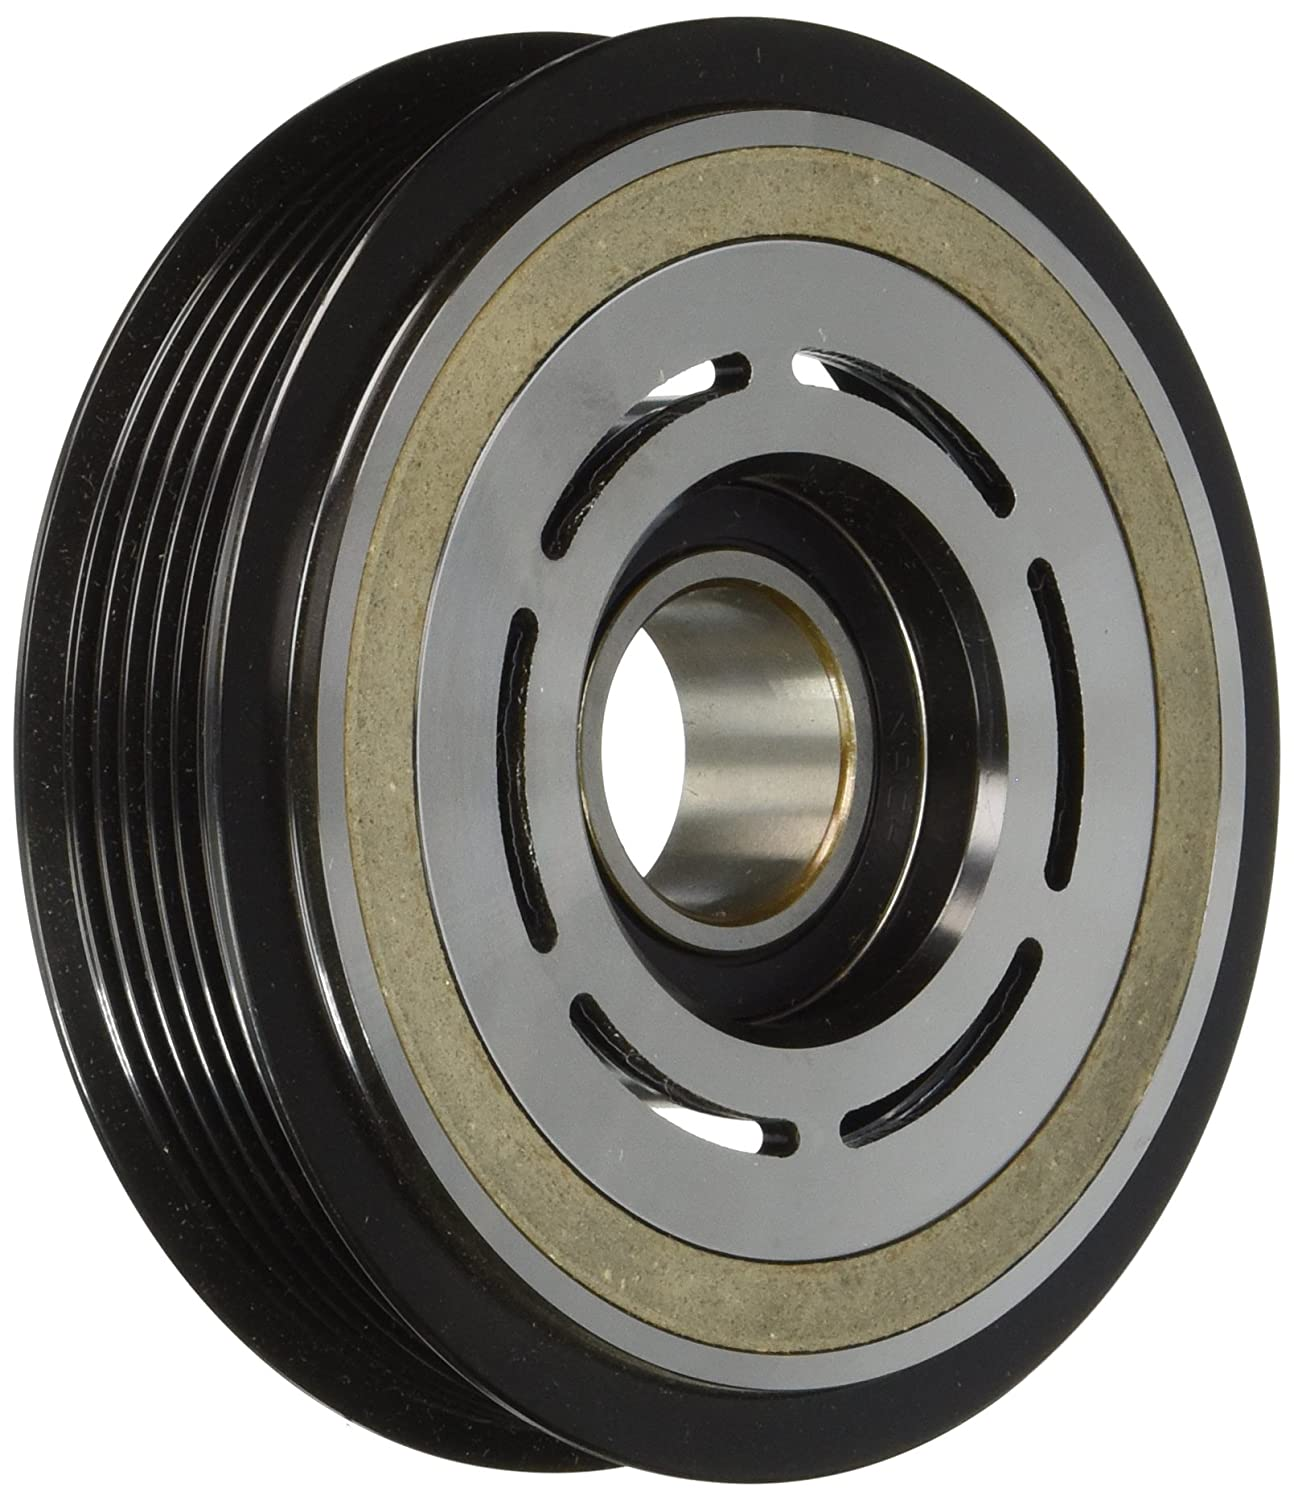 Motorcraft YB-3117 AC Compressor Clutch Pulley